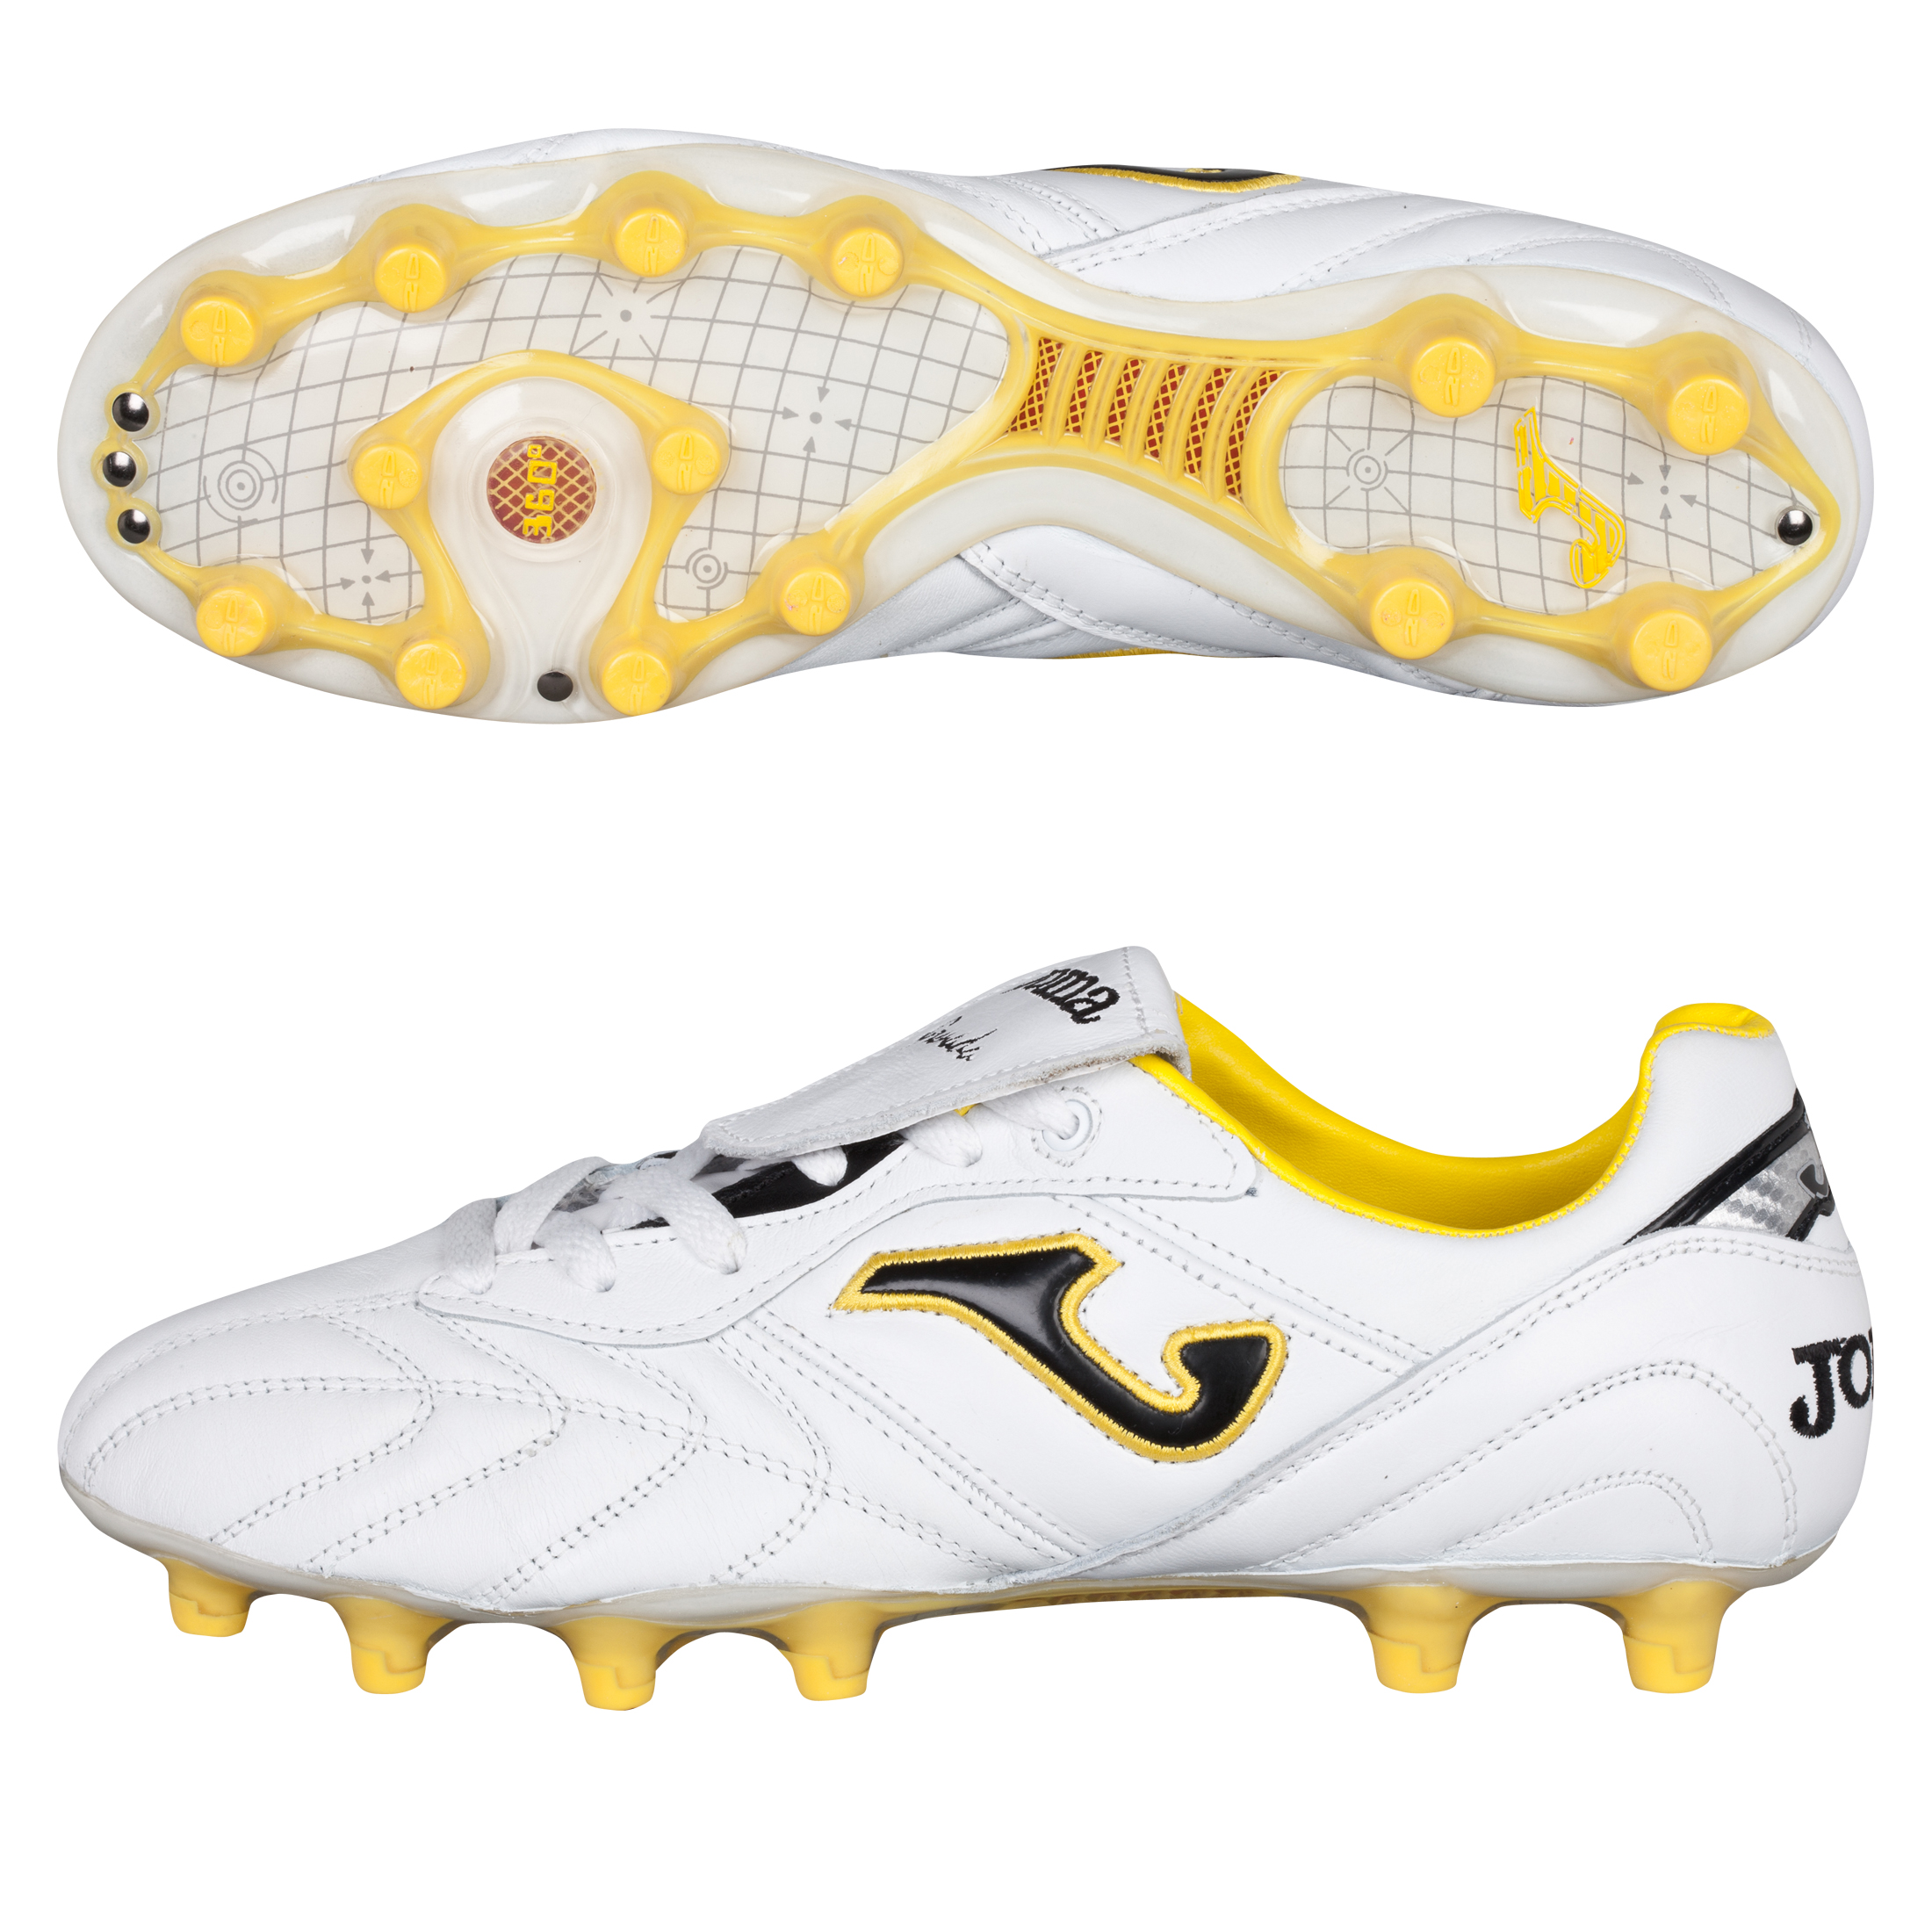 Joma Granada Firm Ground Football Boots - White/Yellow